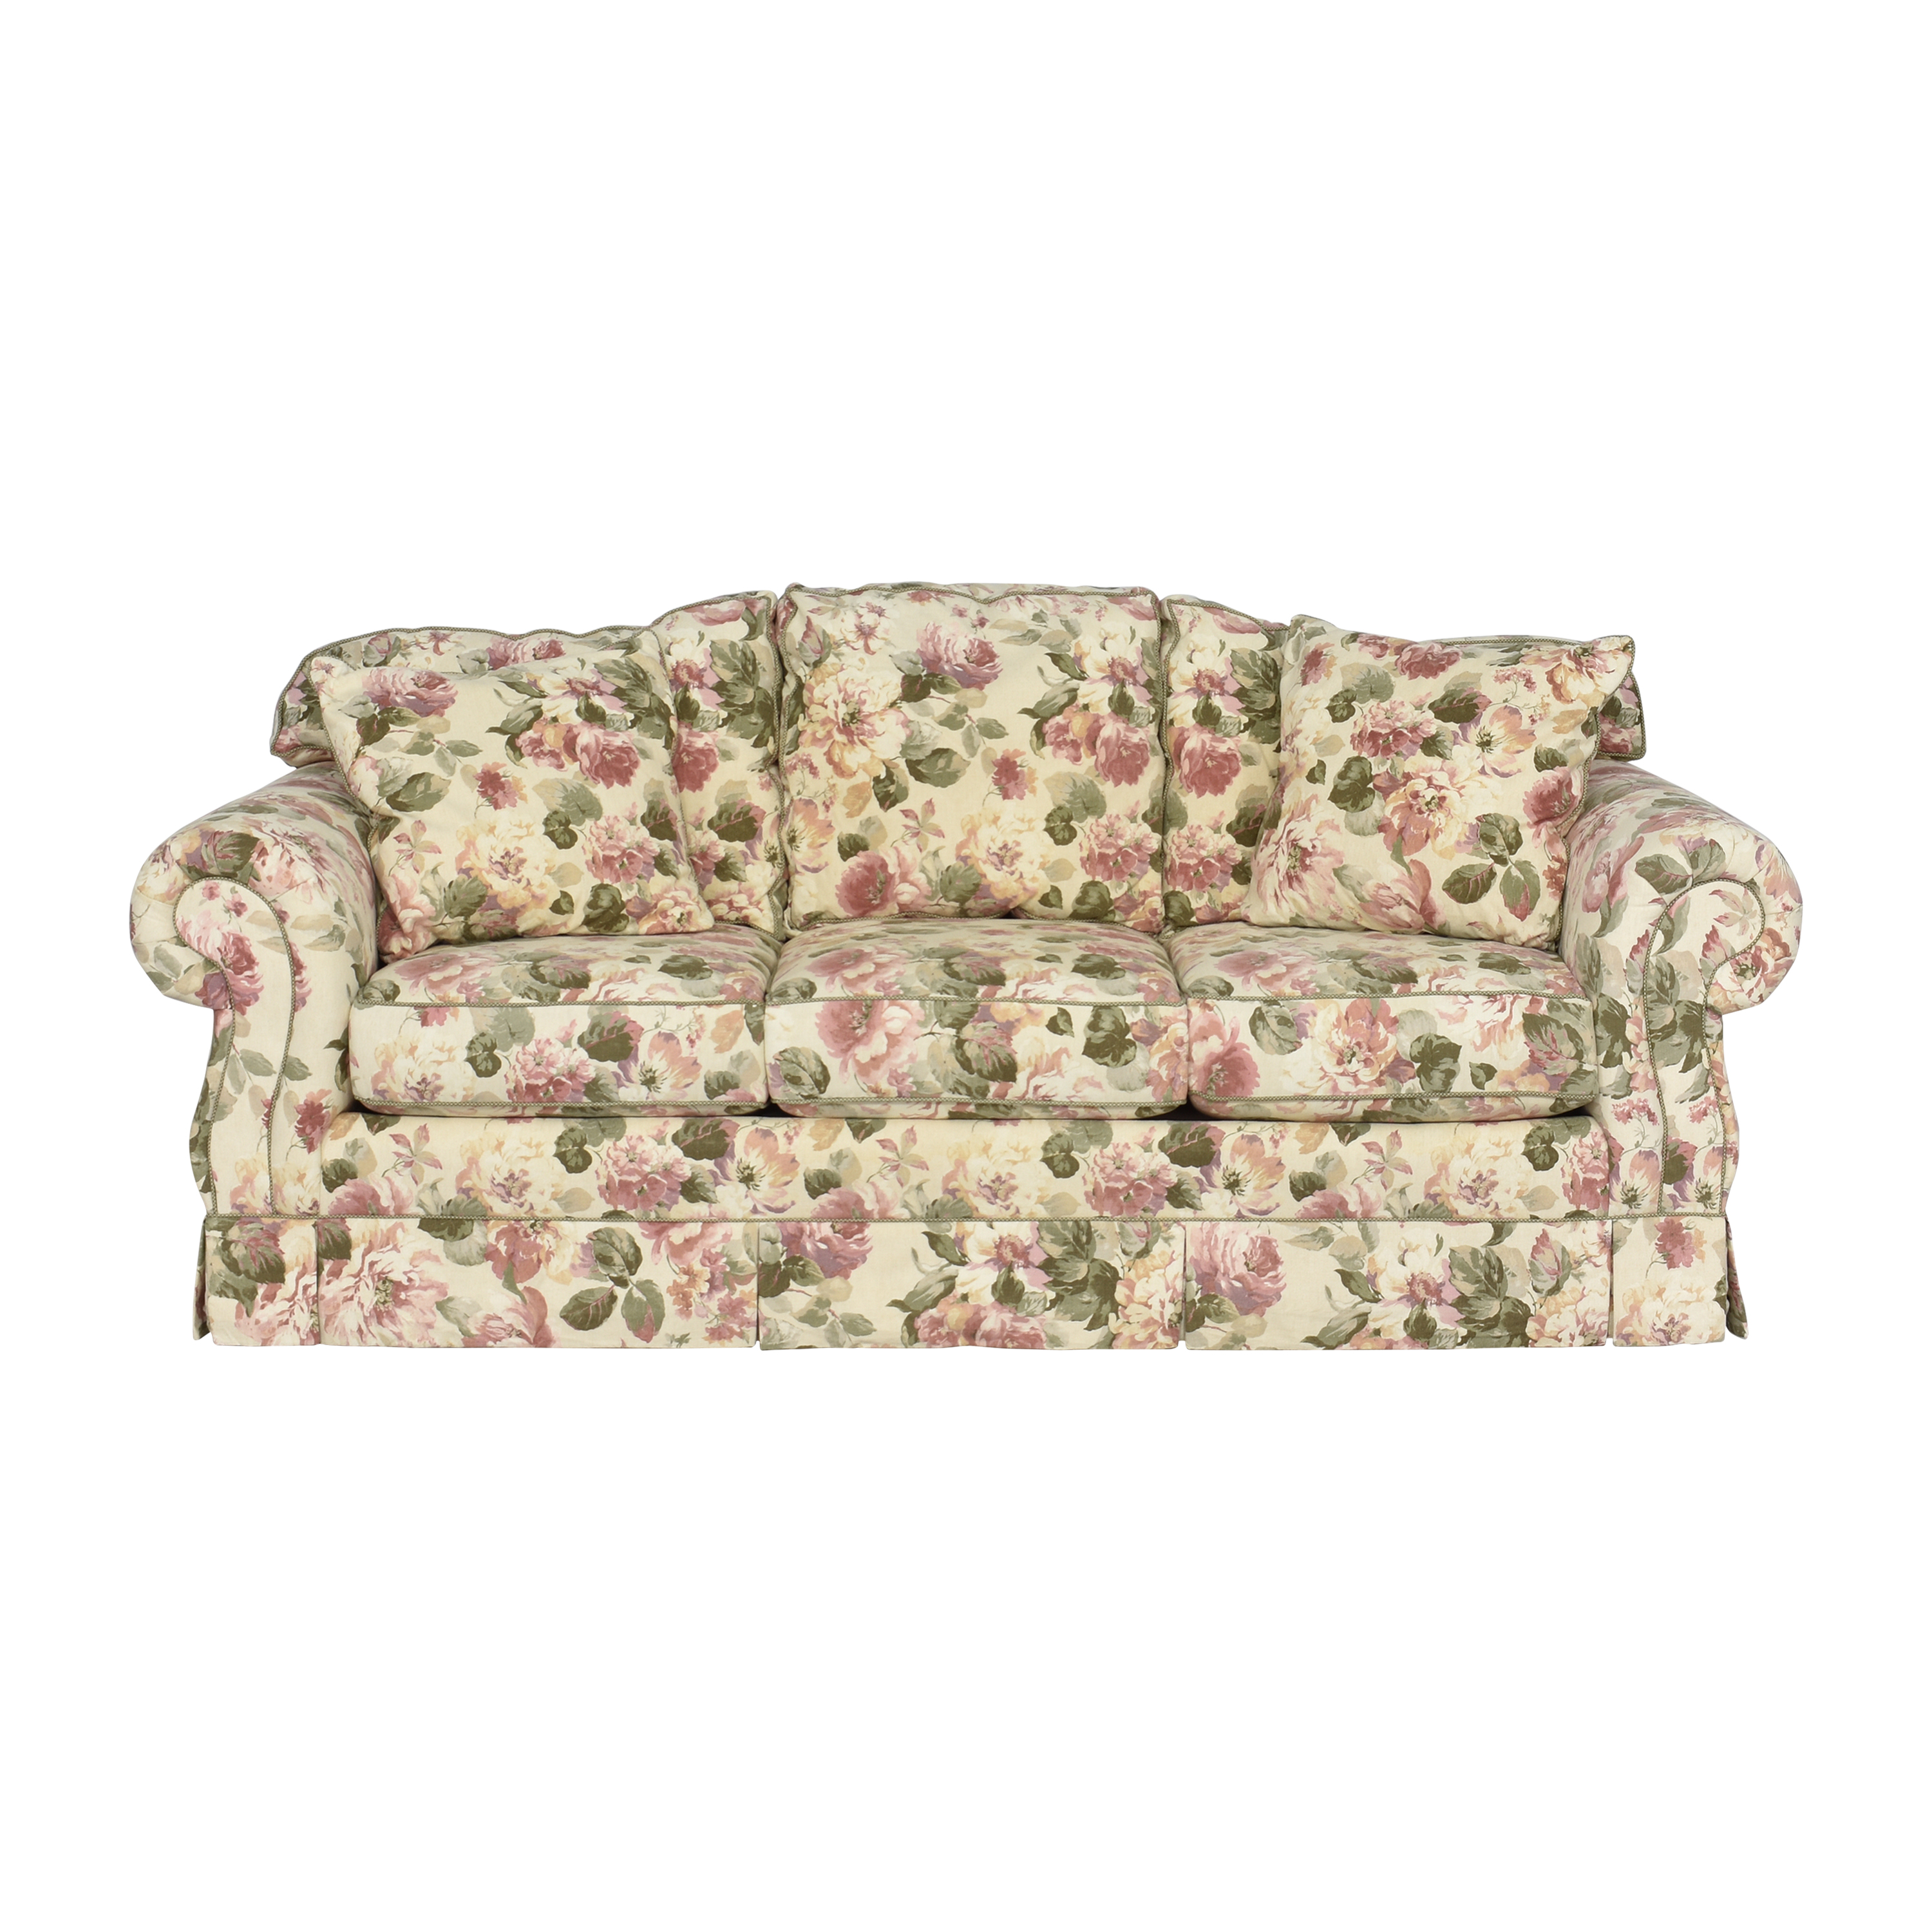 King Hickory King Hickory Roll Arm Sofa dimensions